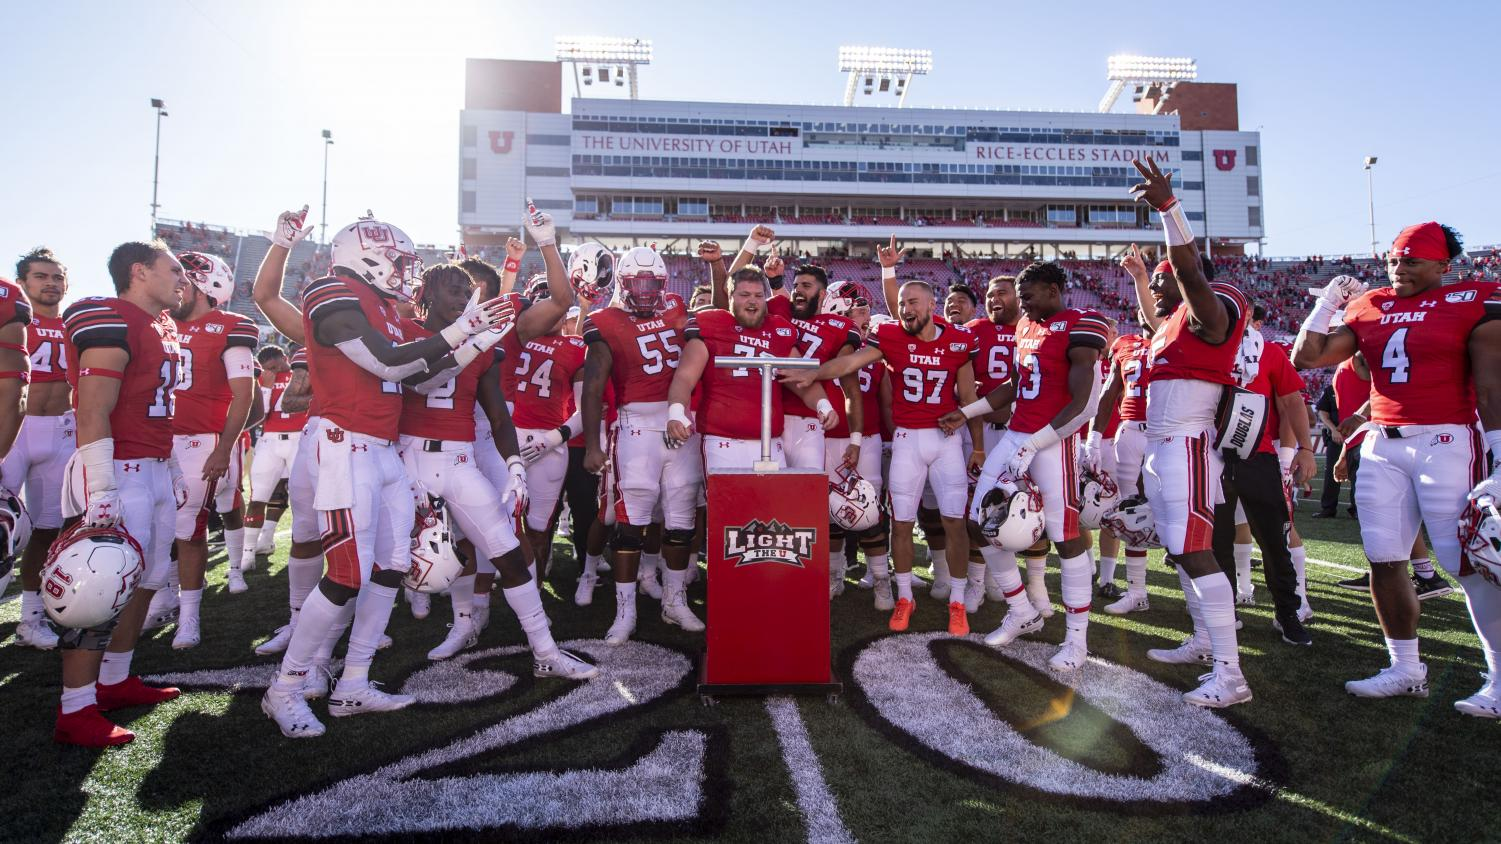 The University of Utah sings the Utah fight song following an NCAA Football game vs. The Idaho State Bengals at Rice Eccles Stadium in Salt Lake City, Utah on Saturday, Sept. 14, 2019. (Photo by Kiffer Creveling | The Daily Utah Chronicle)